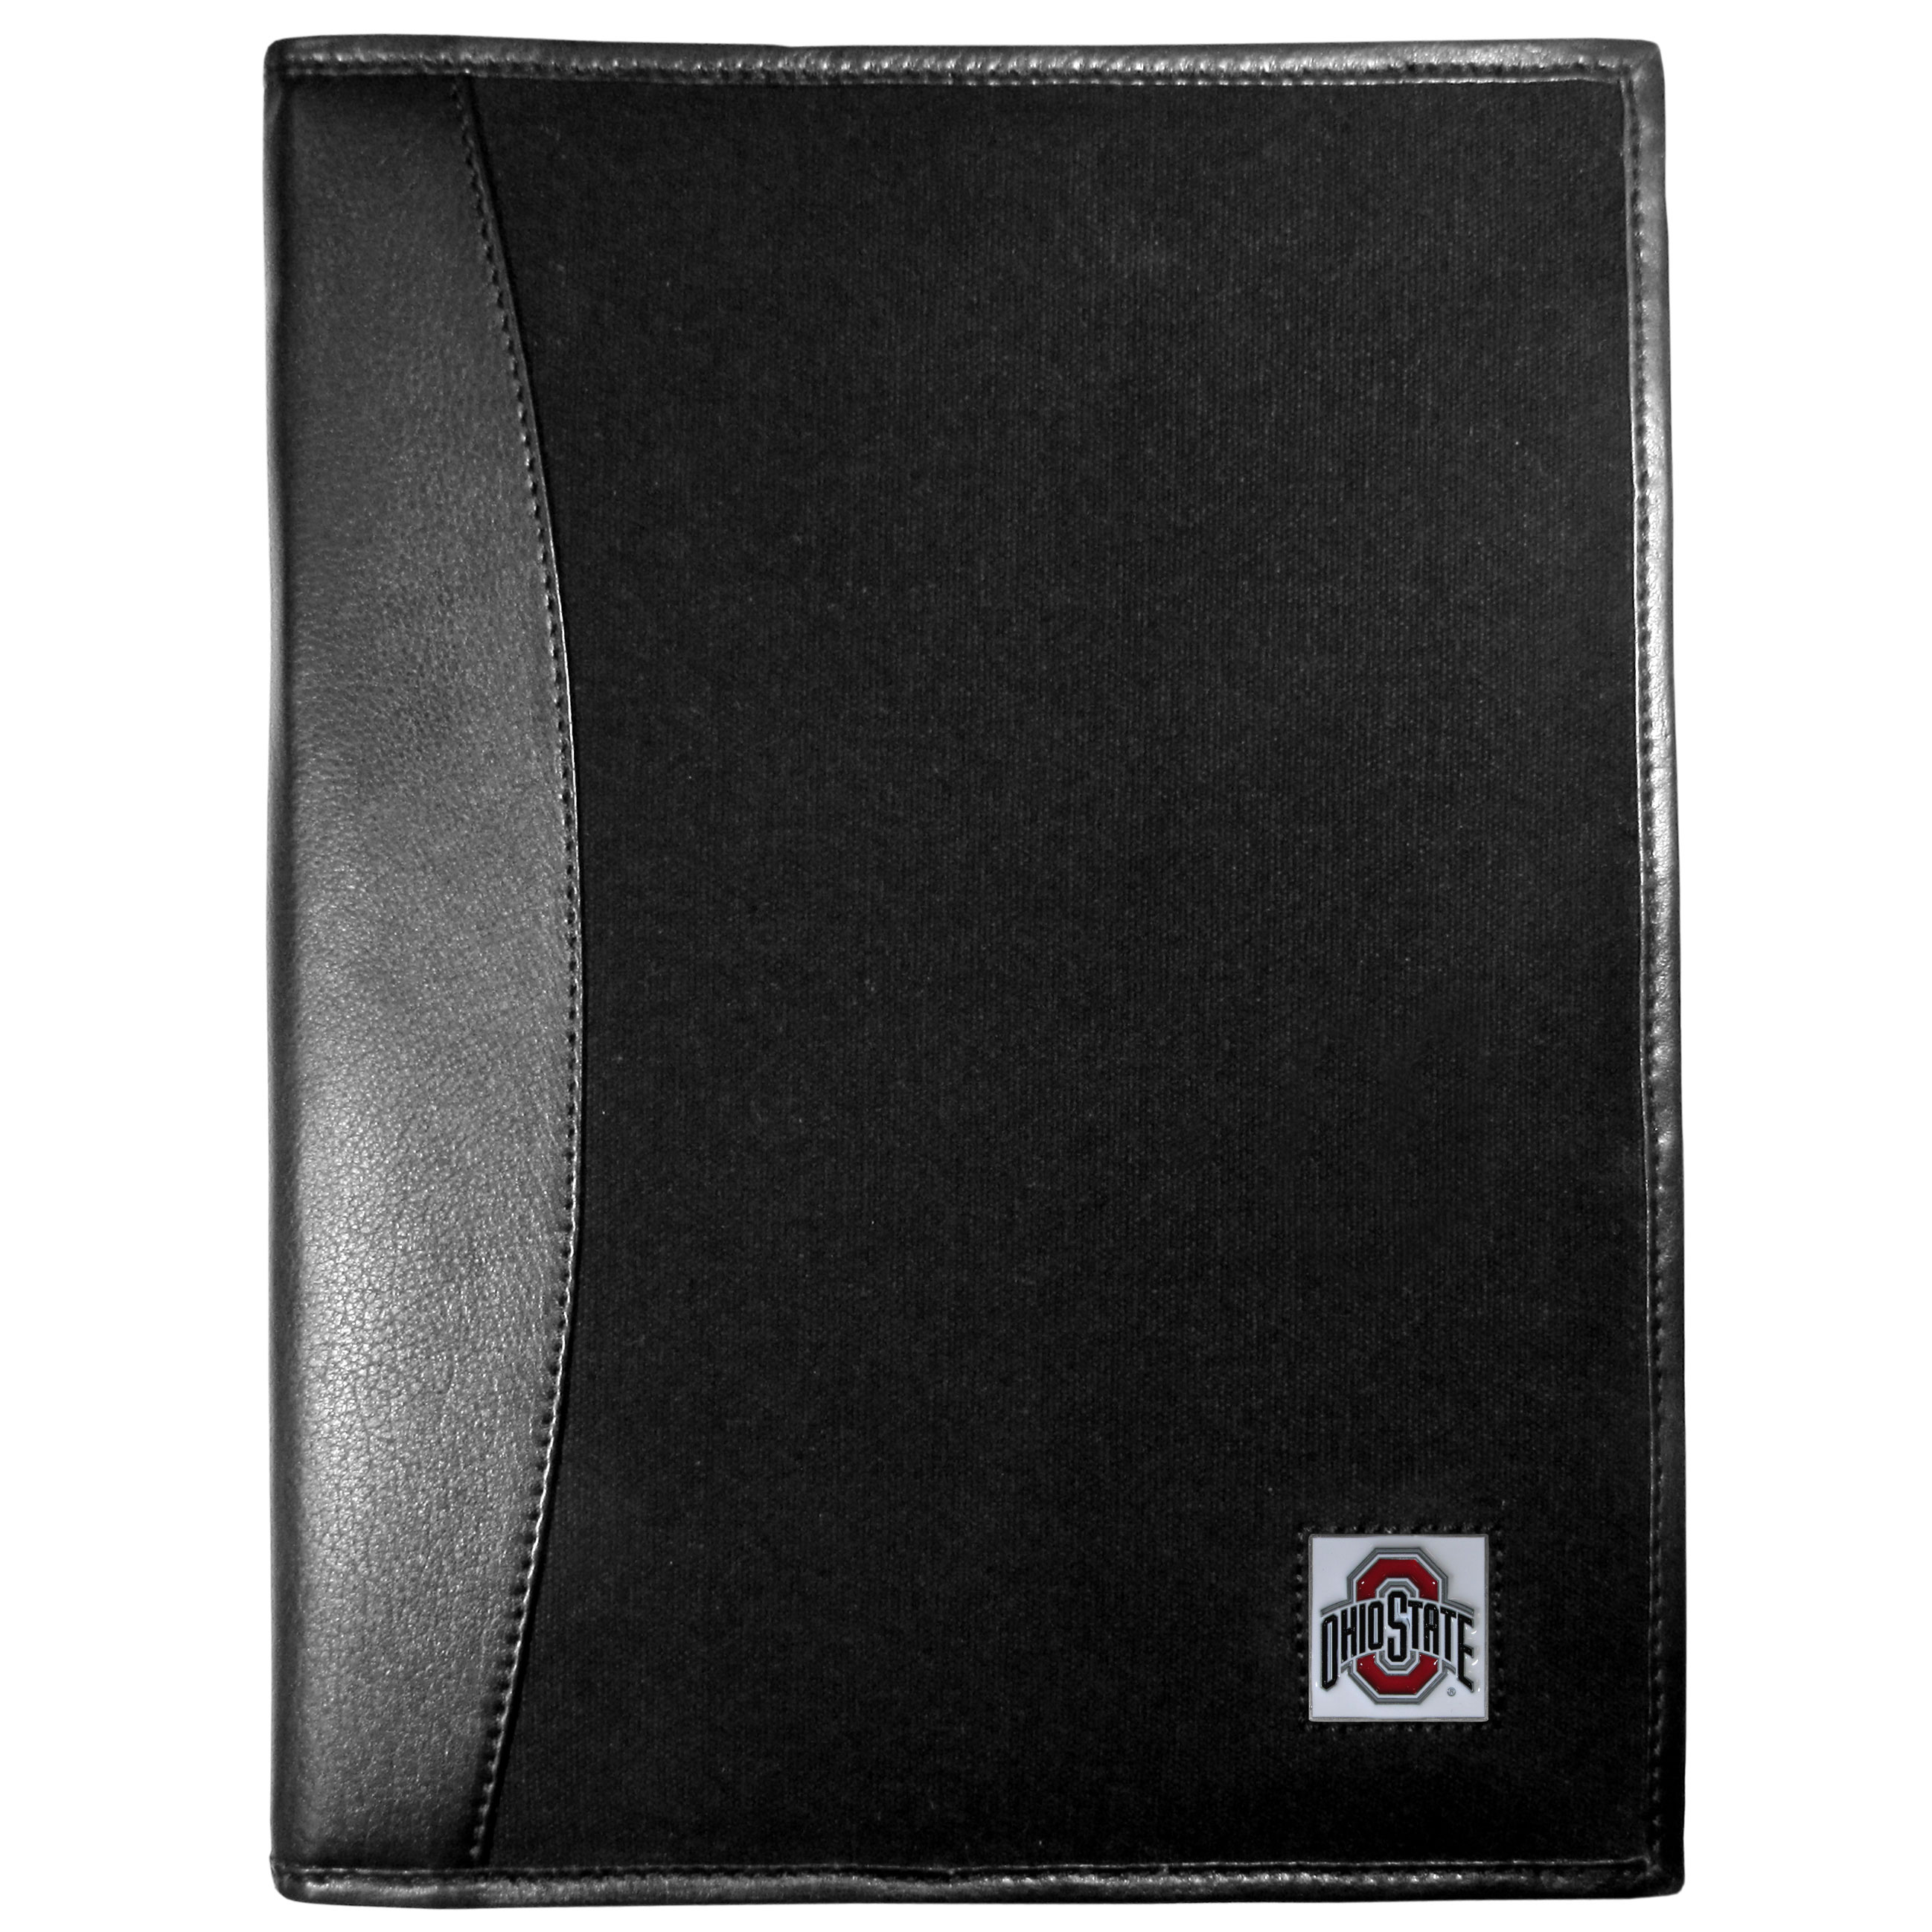 Ohio St. Buckeyes Leather and Canvas Padfolio - Our leather and canvas padfolio perfectly blends form and function. The attractive portfolio is bound in fine grain leather with an attractive canvas finish and the interior is a soft nylon. This high quality business accessory also features a fully cast metal Ohio St. Buckeyes emblem that is subtly set in the corner of the organizer. It is packed with features like 6 card slots for badges, business cards, hotel keys or credit cards and ID with a large pocket for loose papers and a writing tablet slot making it a must-have for the professional on the go.